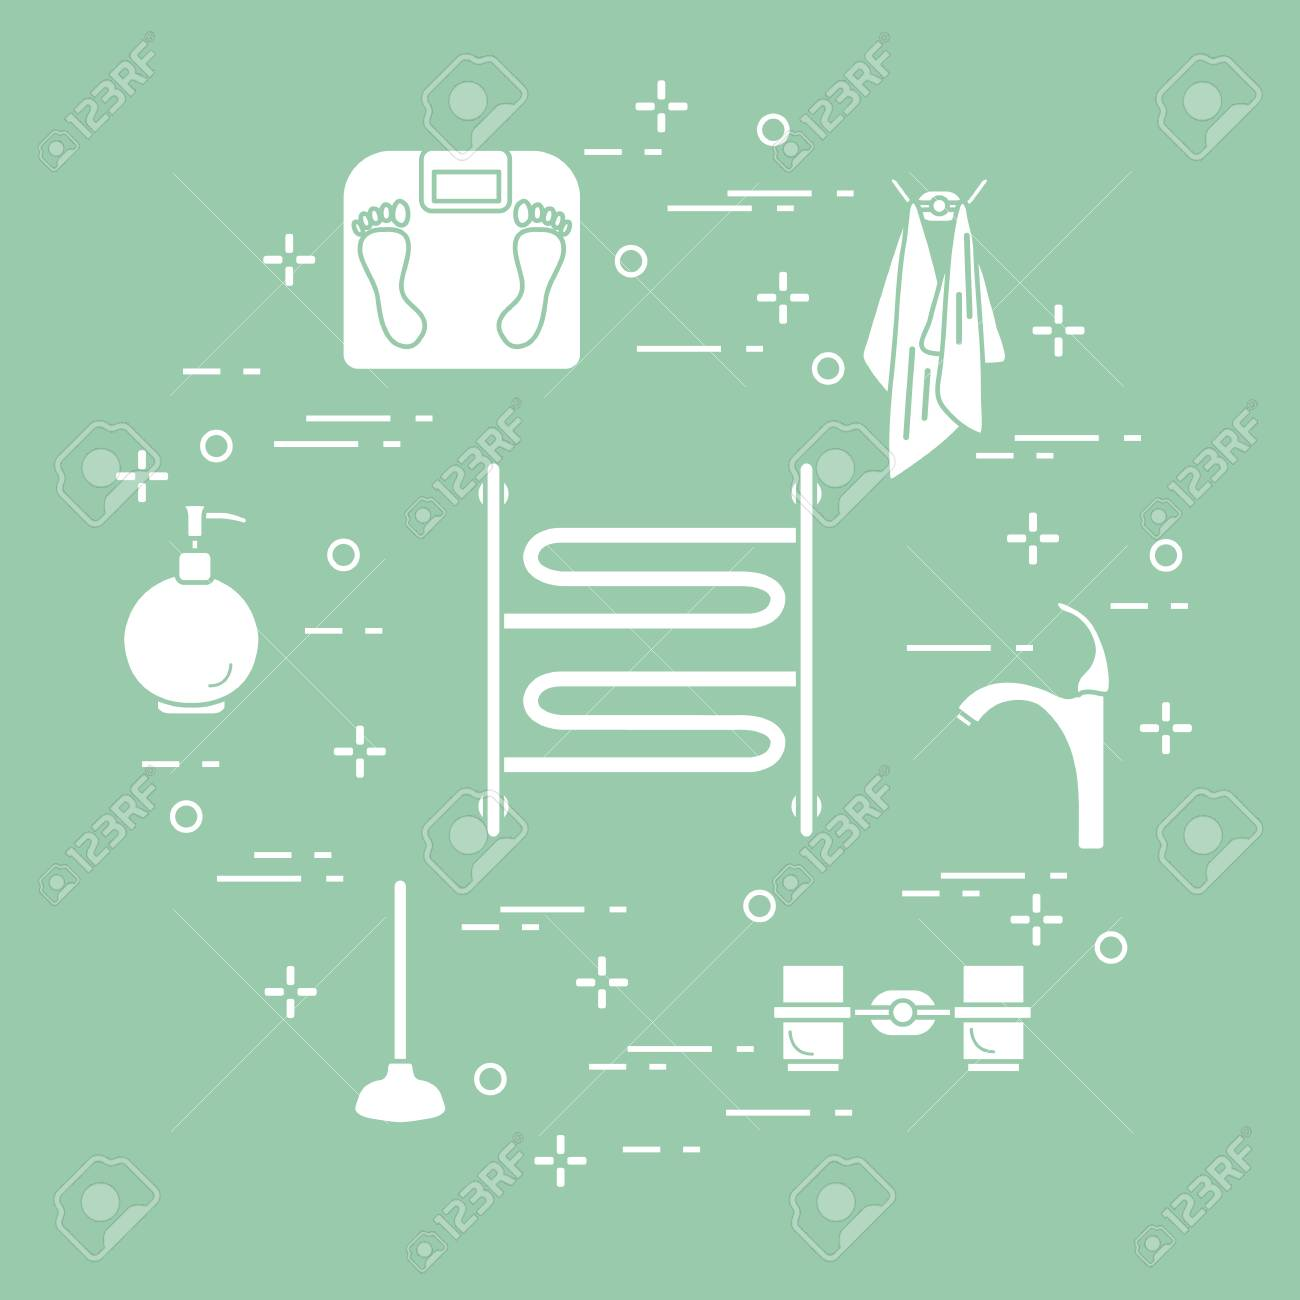 Bathroom Elements: Scales, Towel Warmer, Faucet, Plunger, Glasses ...